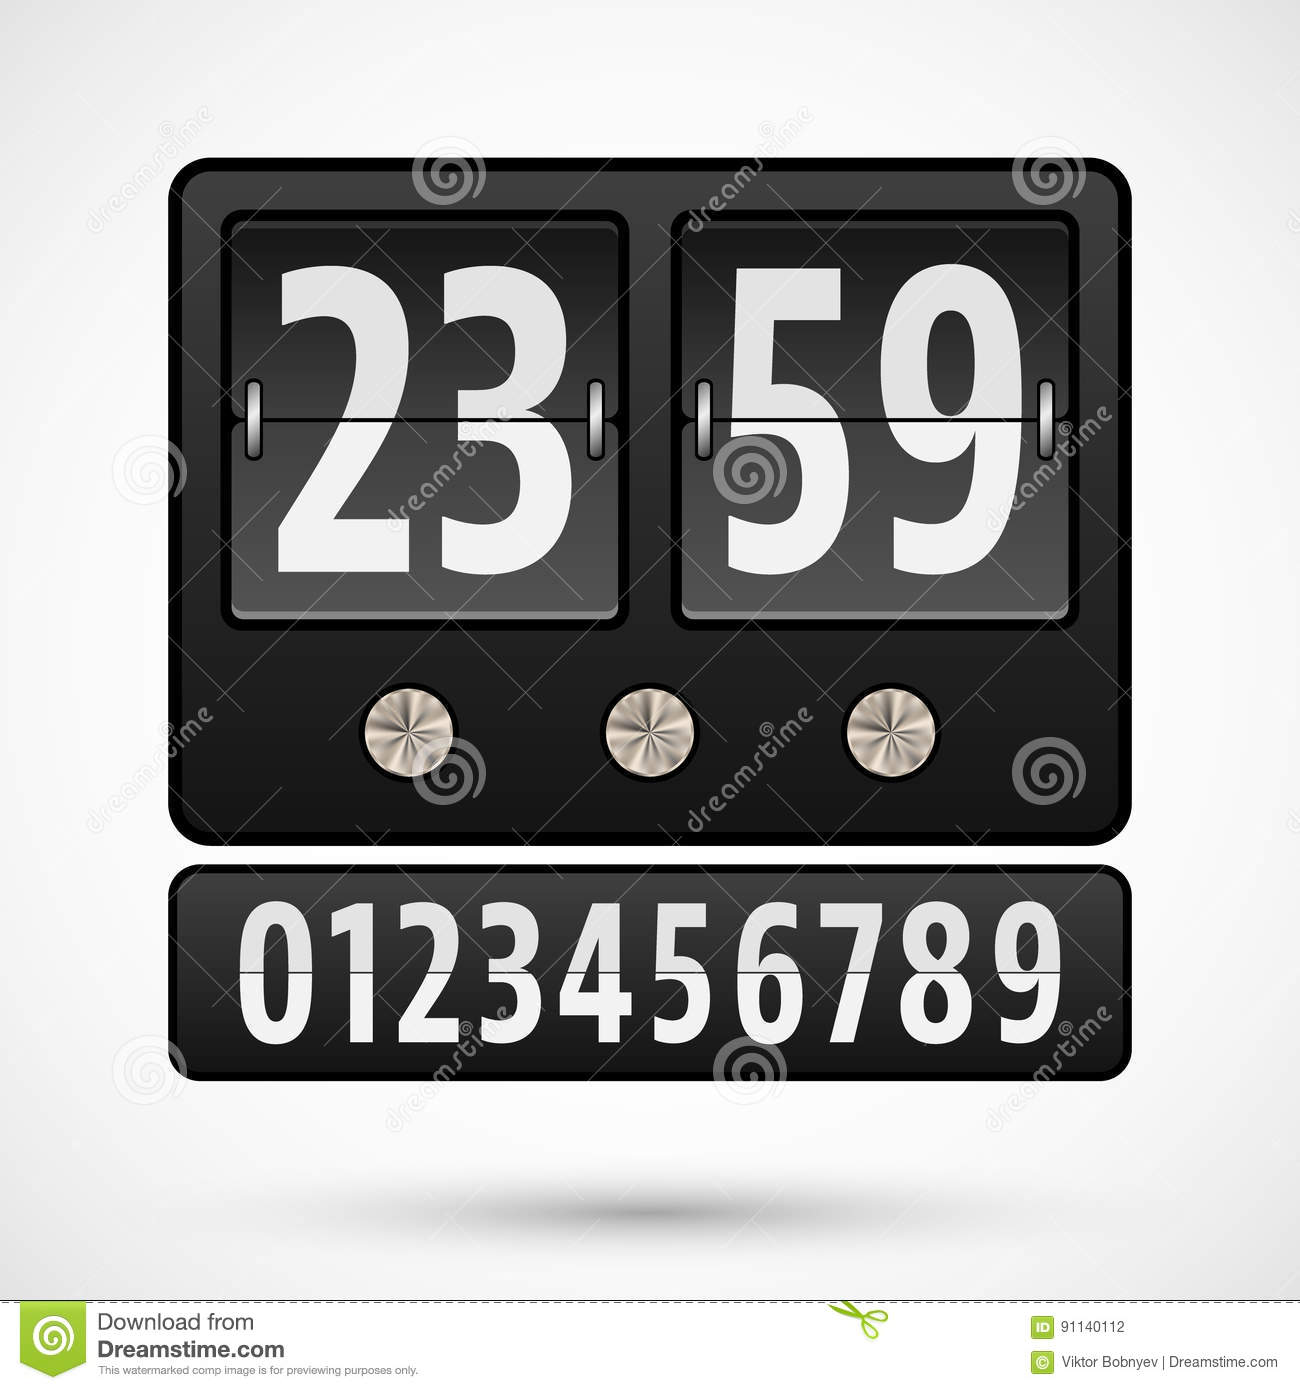 Flip Clock Or Countdown Timer Stock Vector - Illustration of analog ...